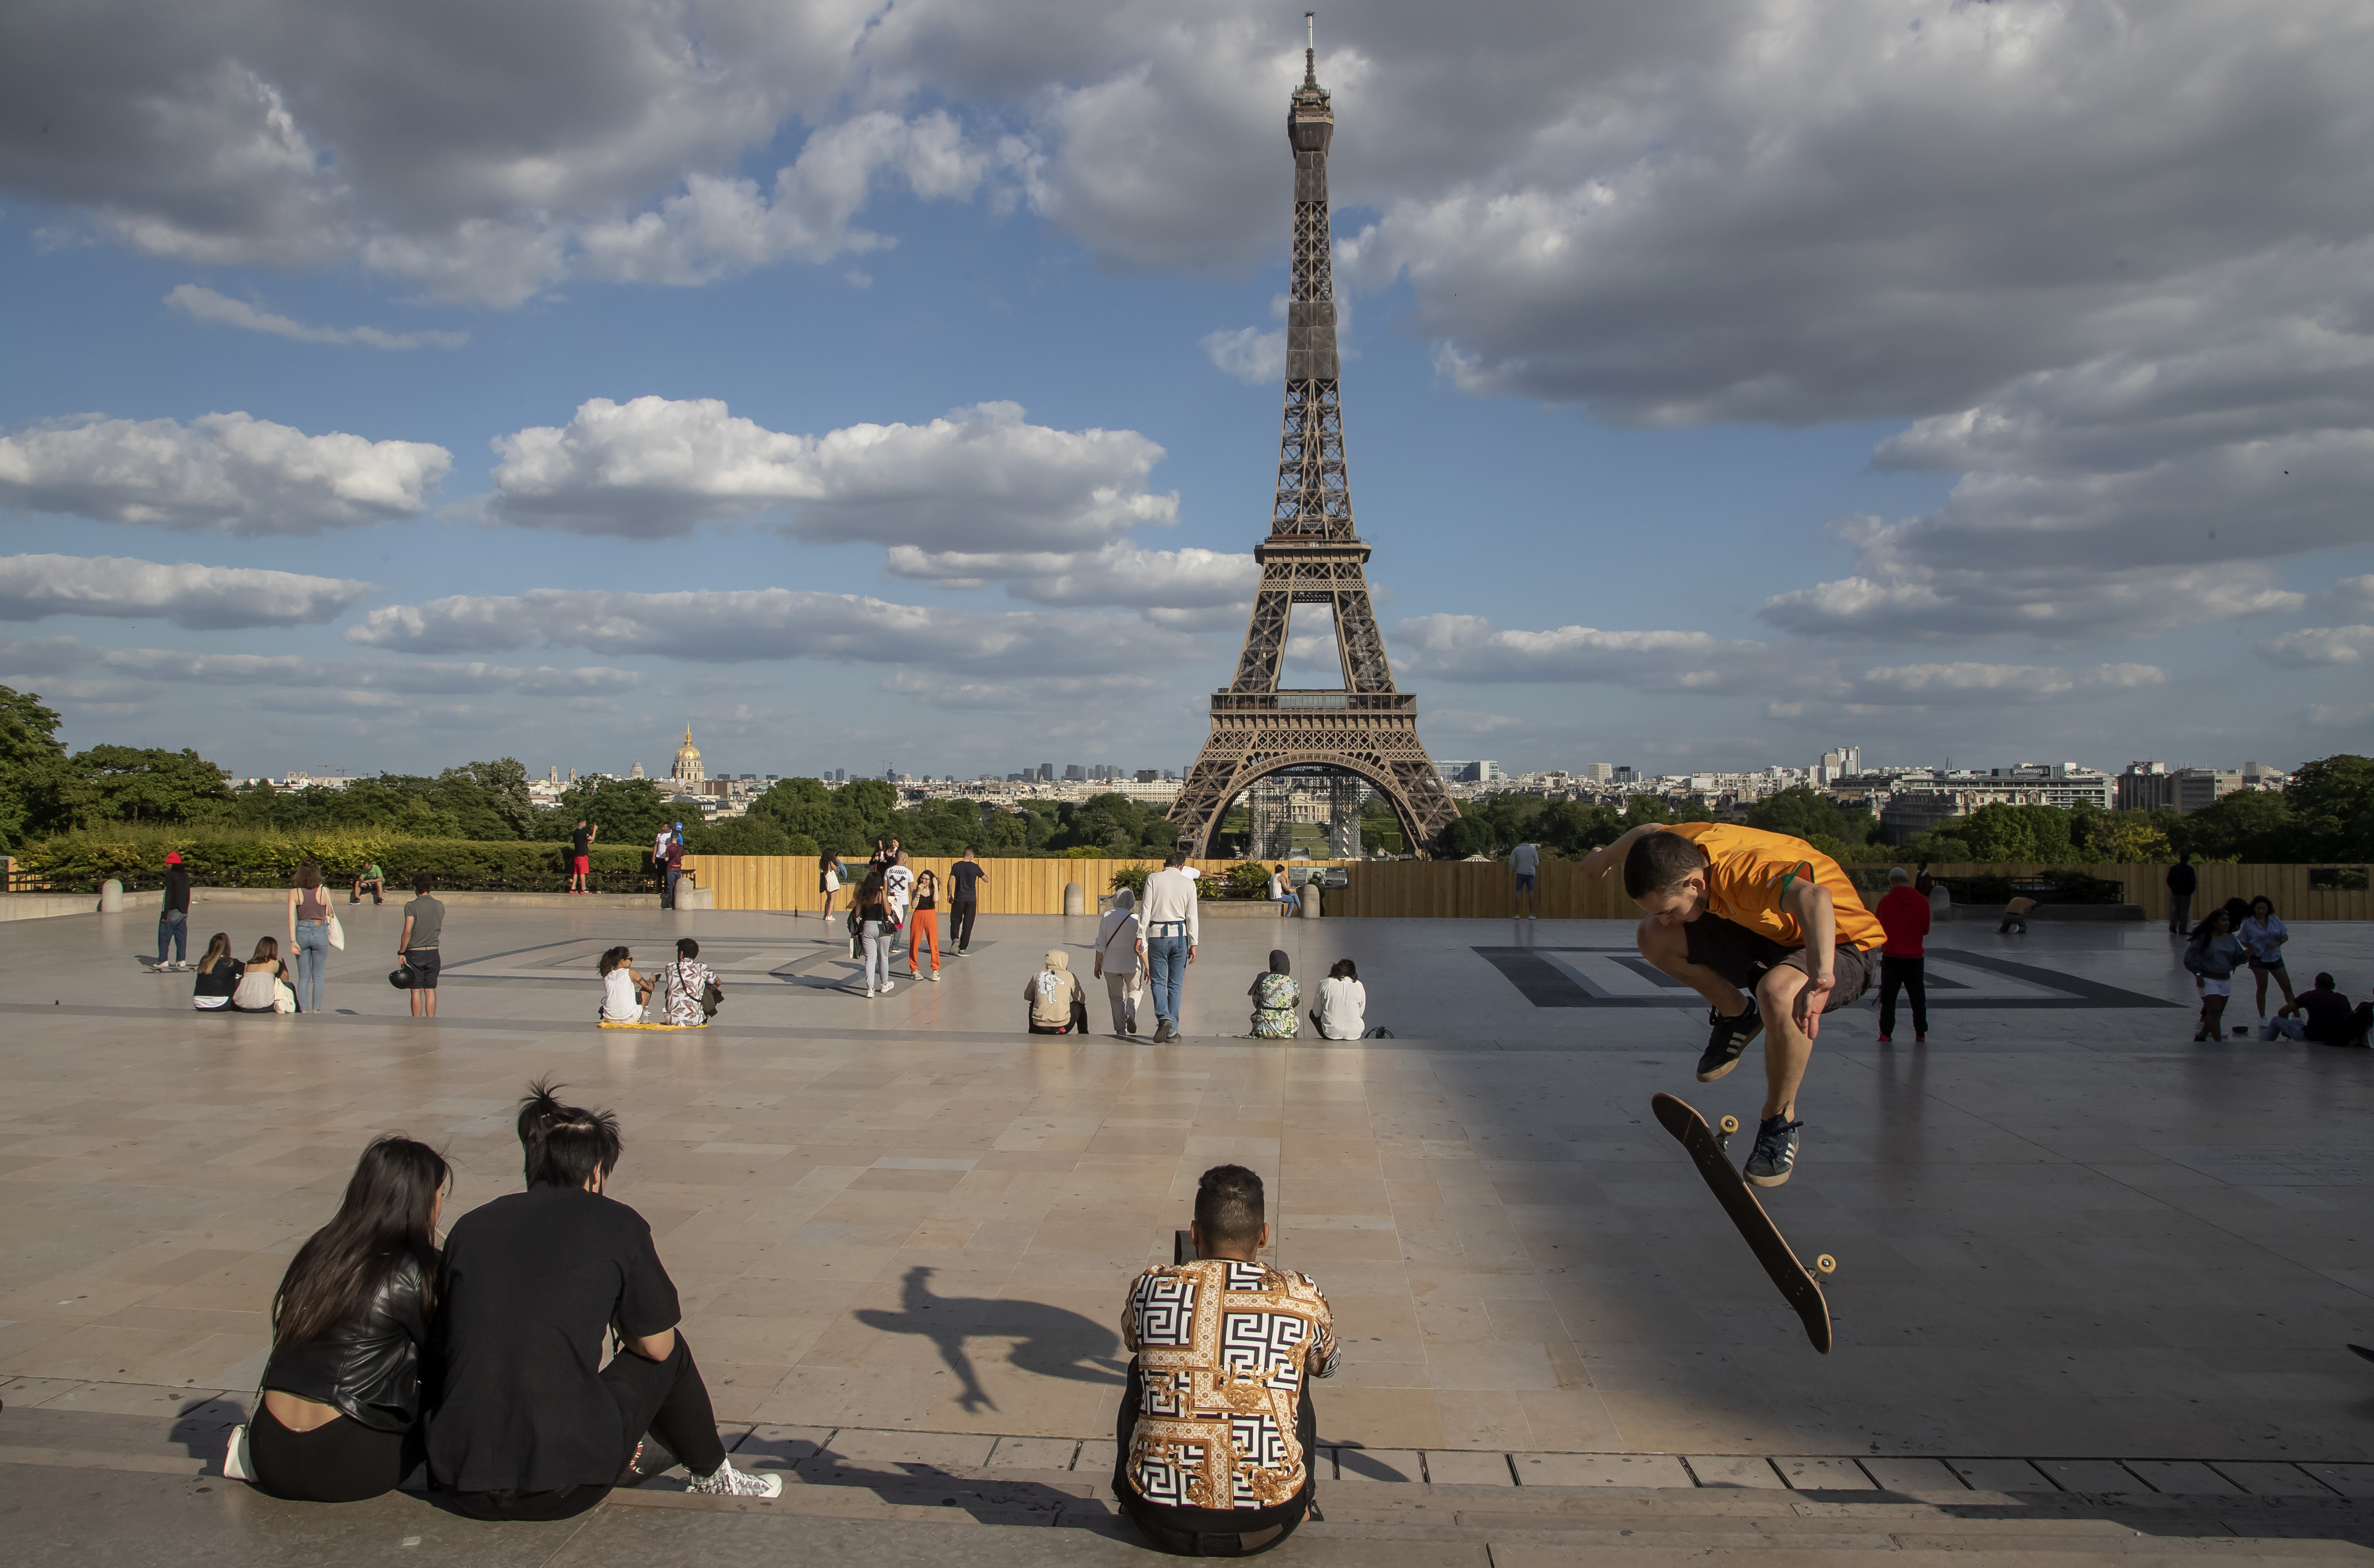 People stroll at Trocadero square near the Eiffel Tower in Paris, Monday, May 25, 2020, as France gradually lifts its Covid-19 lockdown.